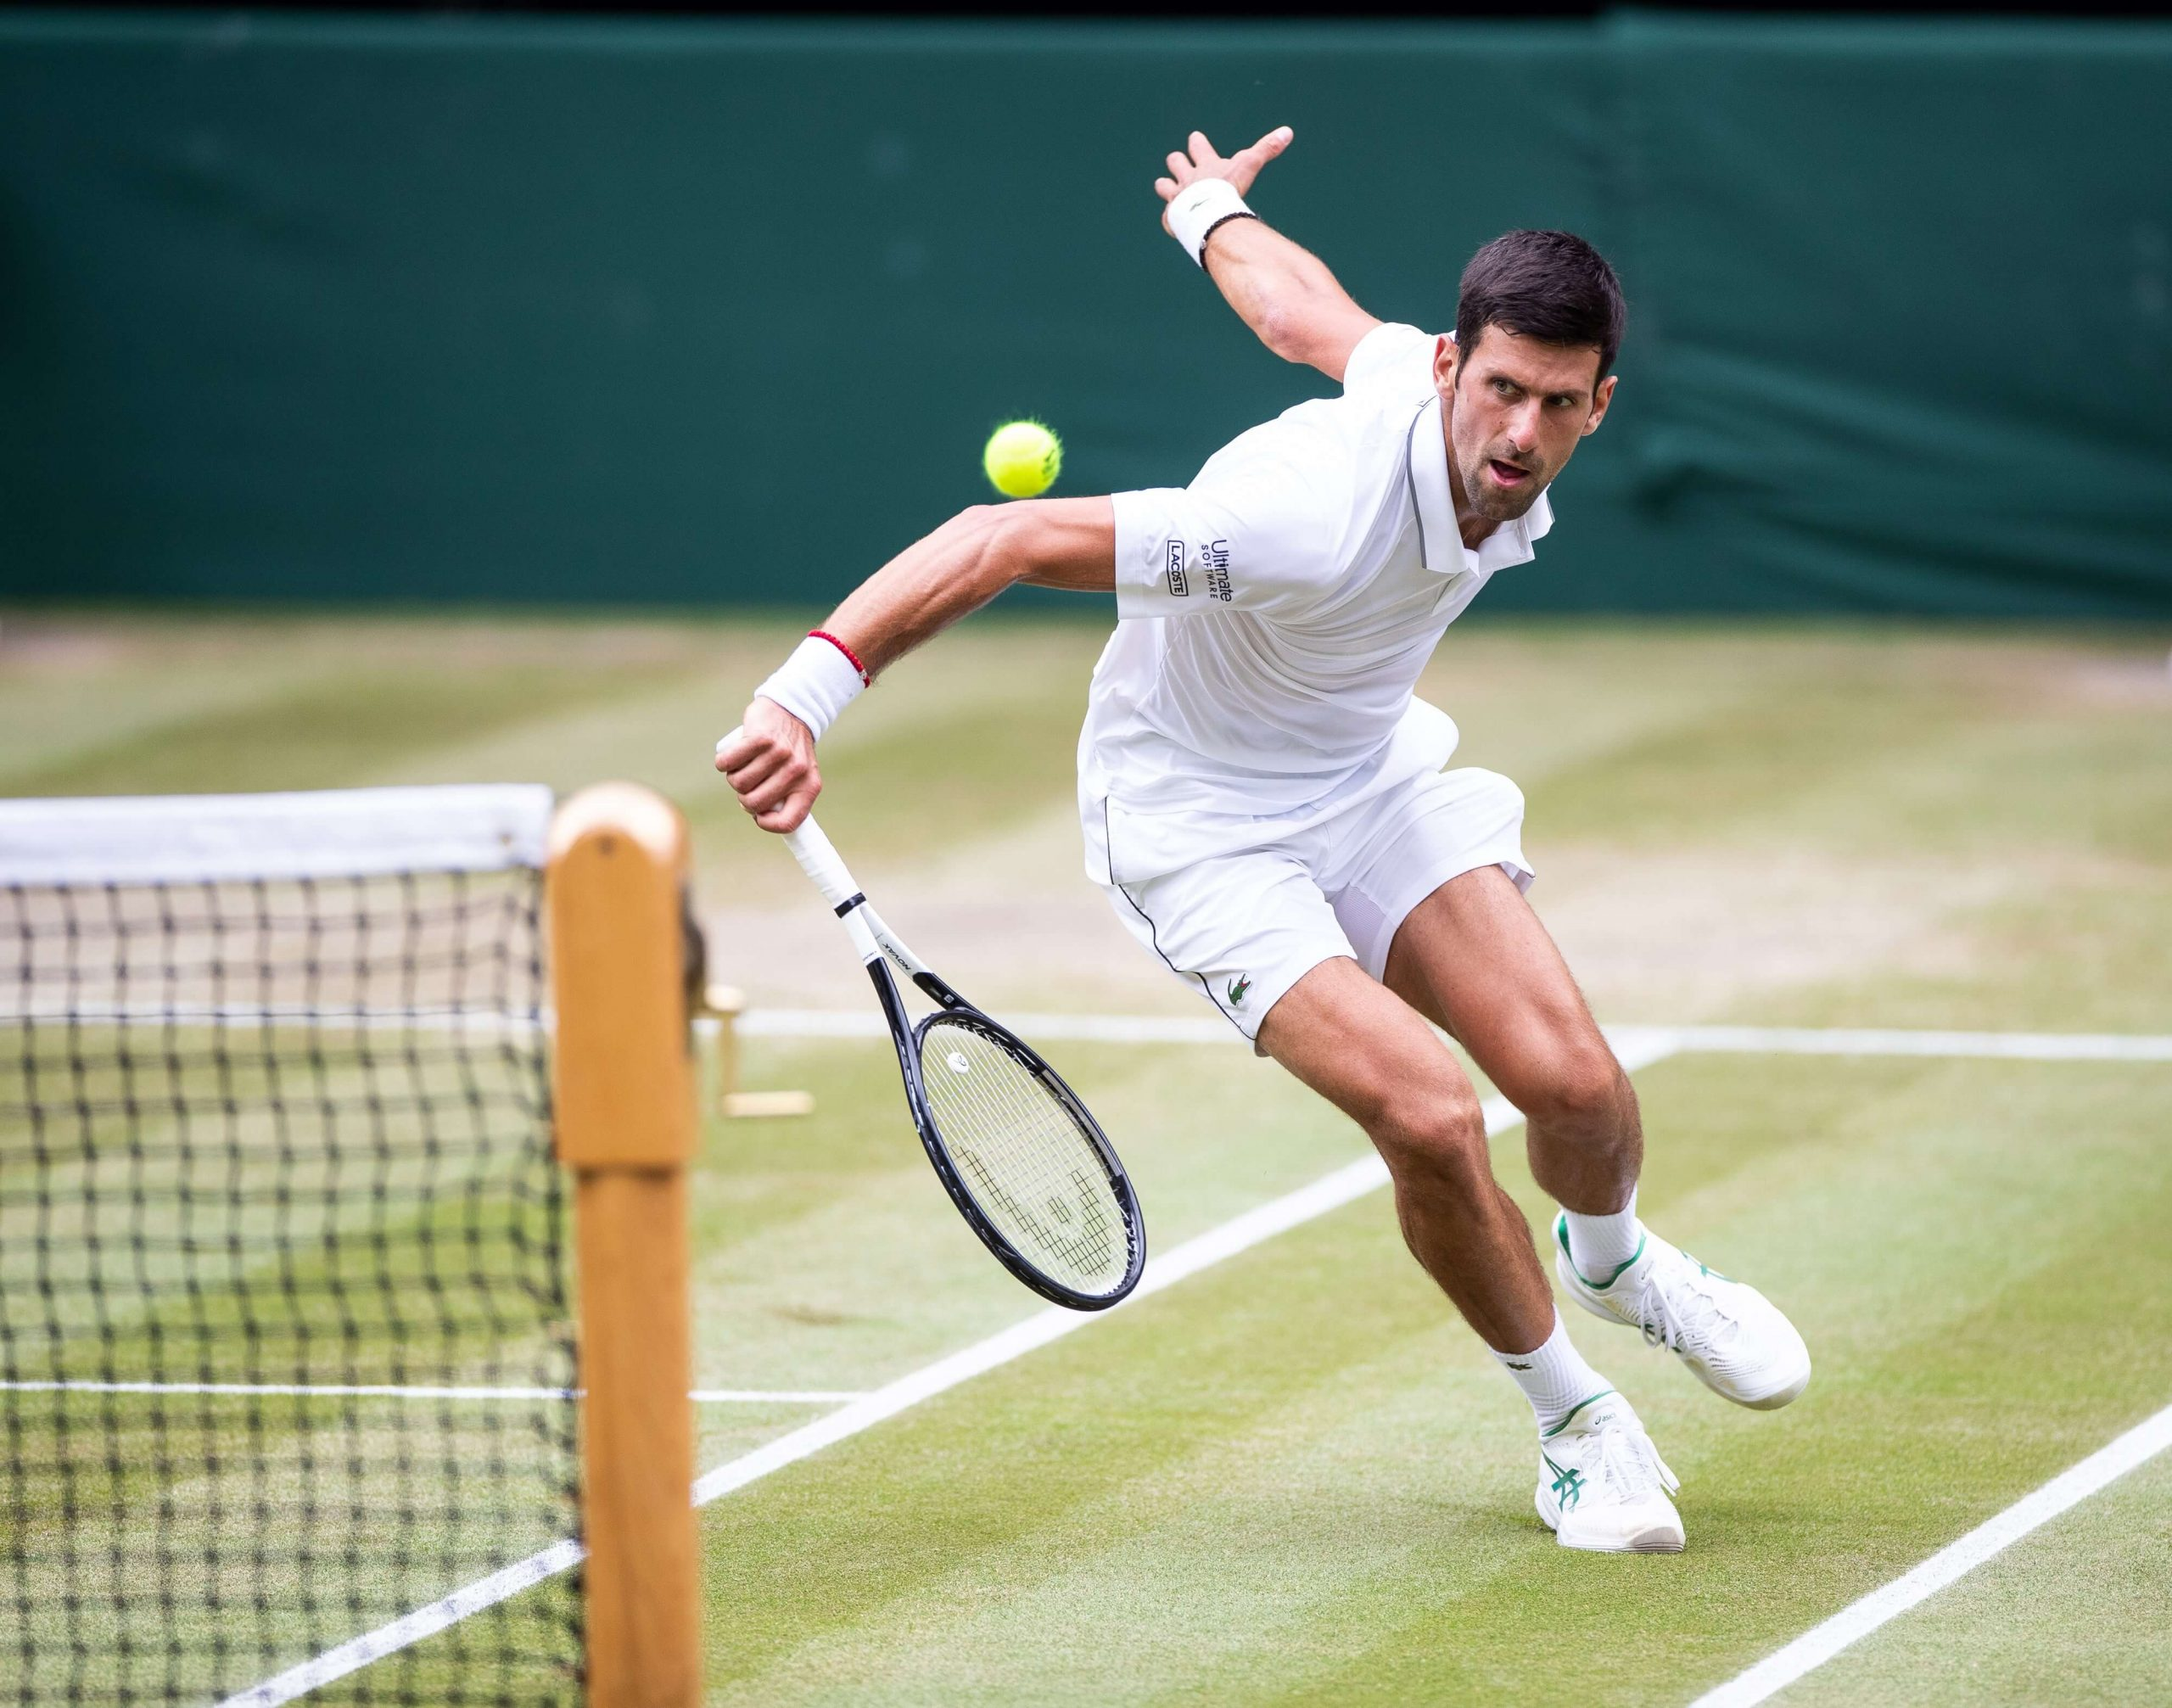 Tennis Betting Online: How to Bet on Tennis